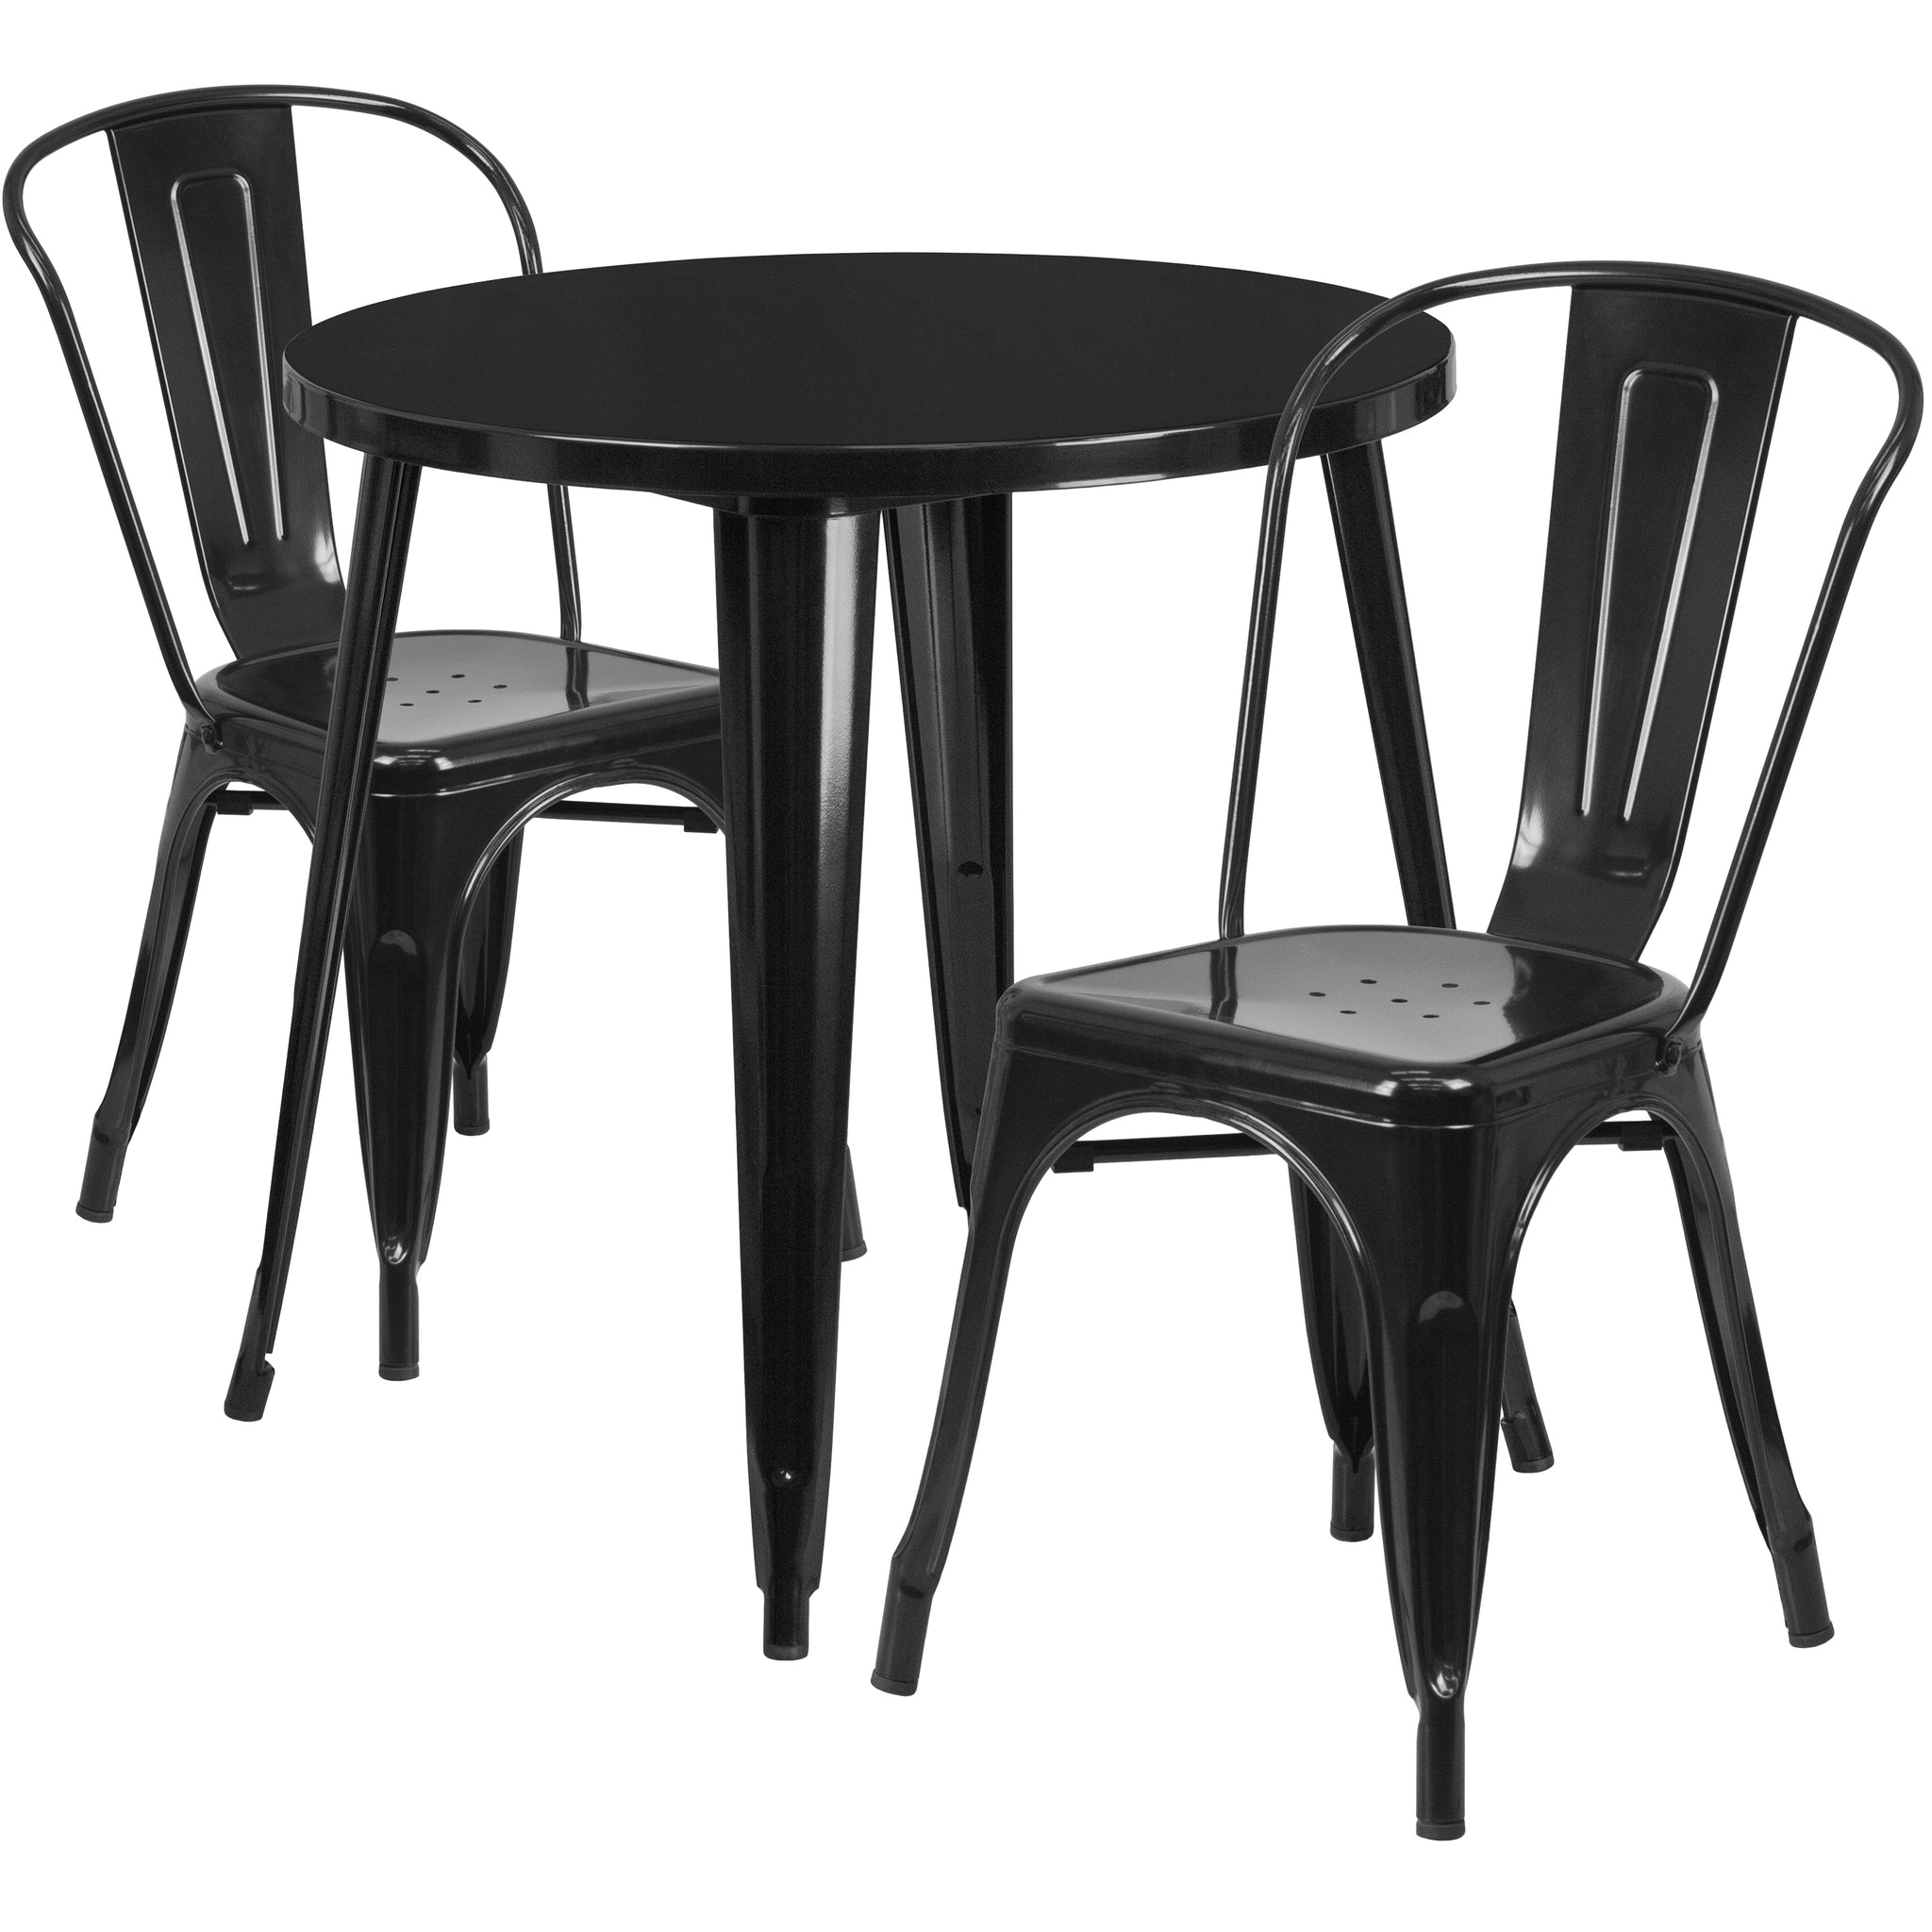 30'' Round Metal Indoor-Outdoor Table Set with 2 Cafe Chairs: Black-Antique Gold